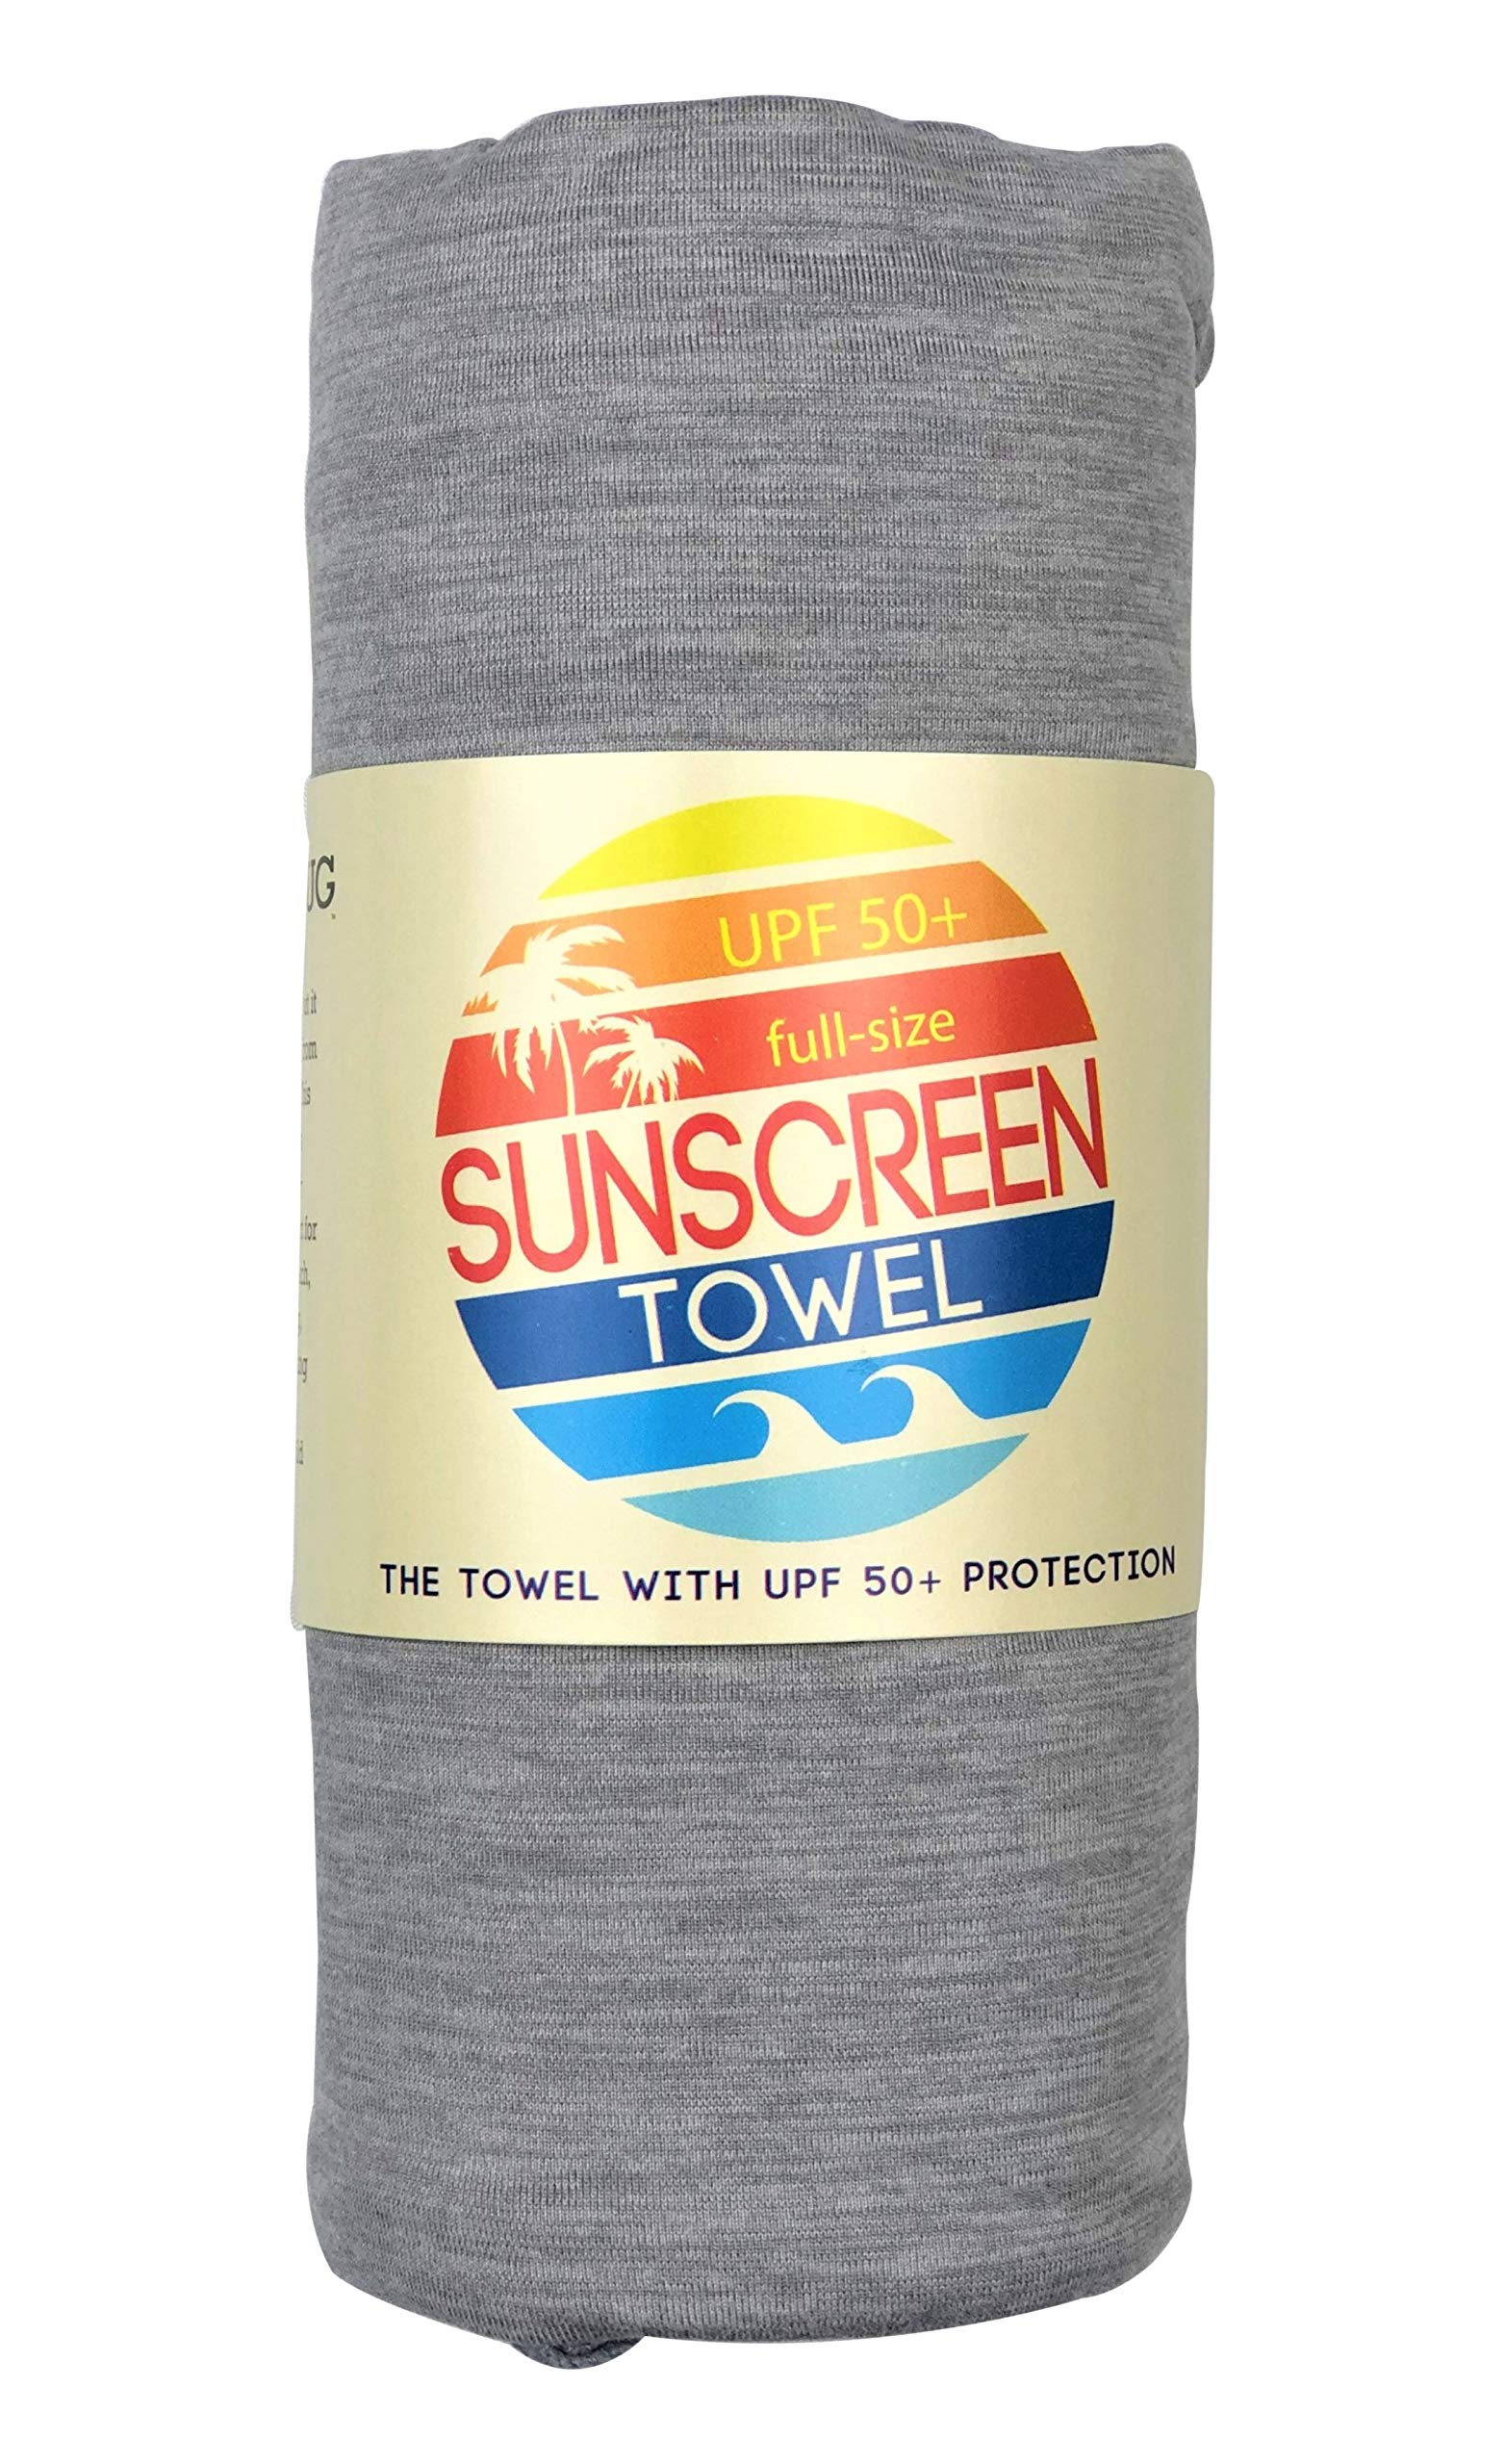 Luv Bug Company UPF 50+ Sunscreen Towel Full Size (Gray Heather) by Luv Bug